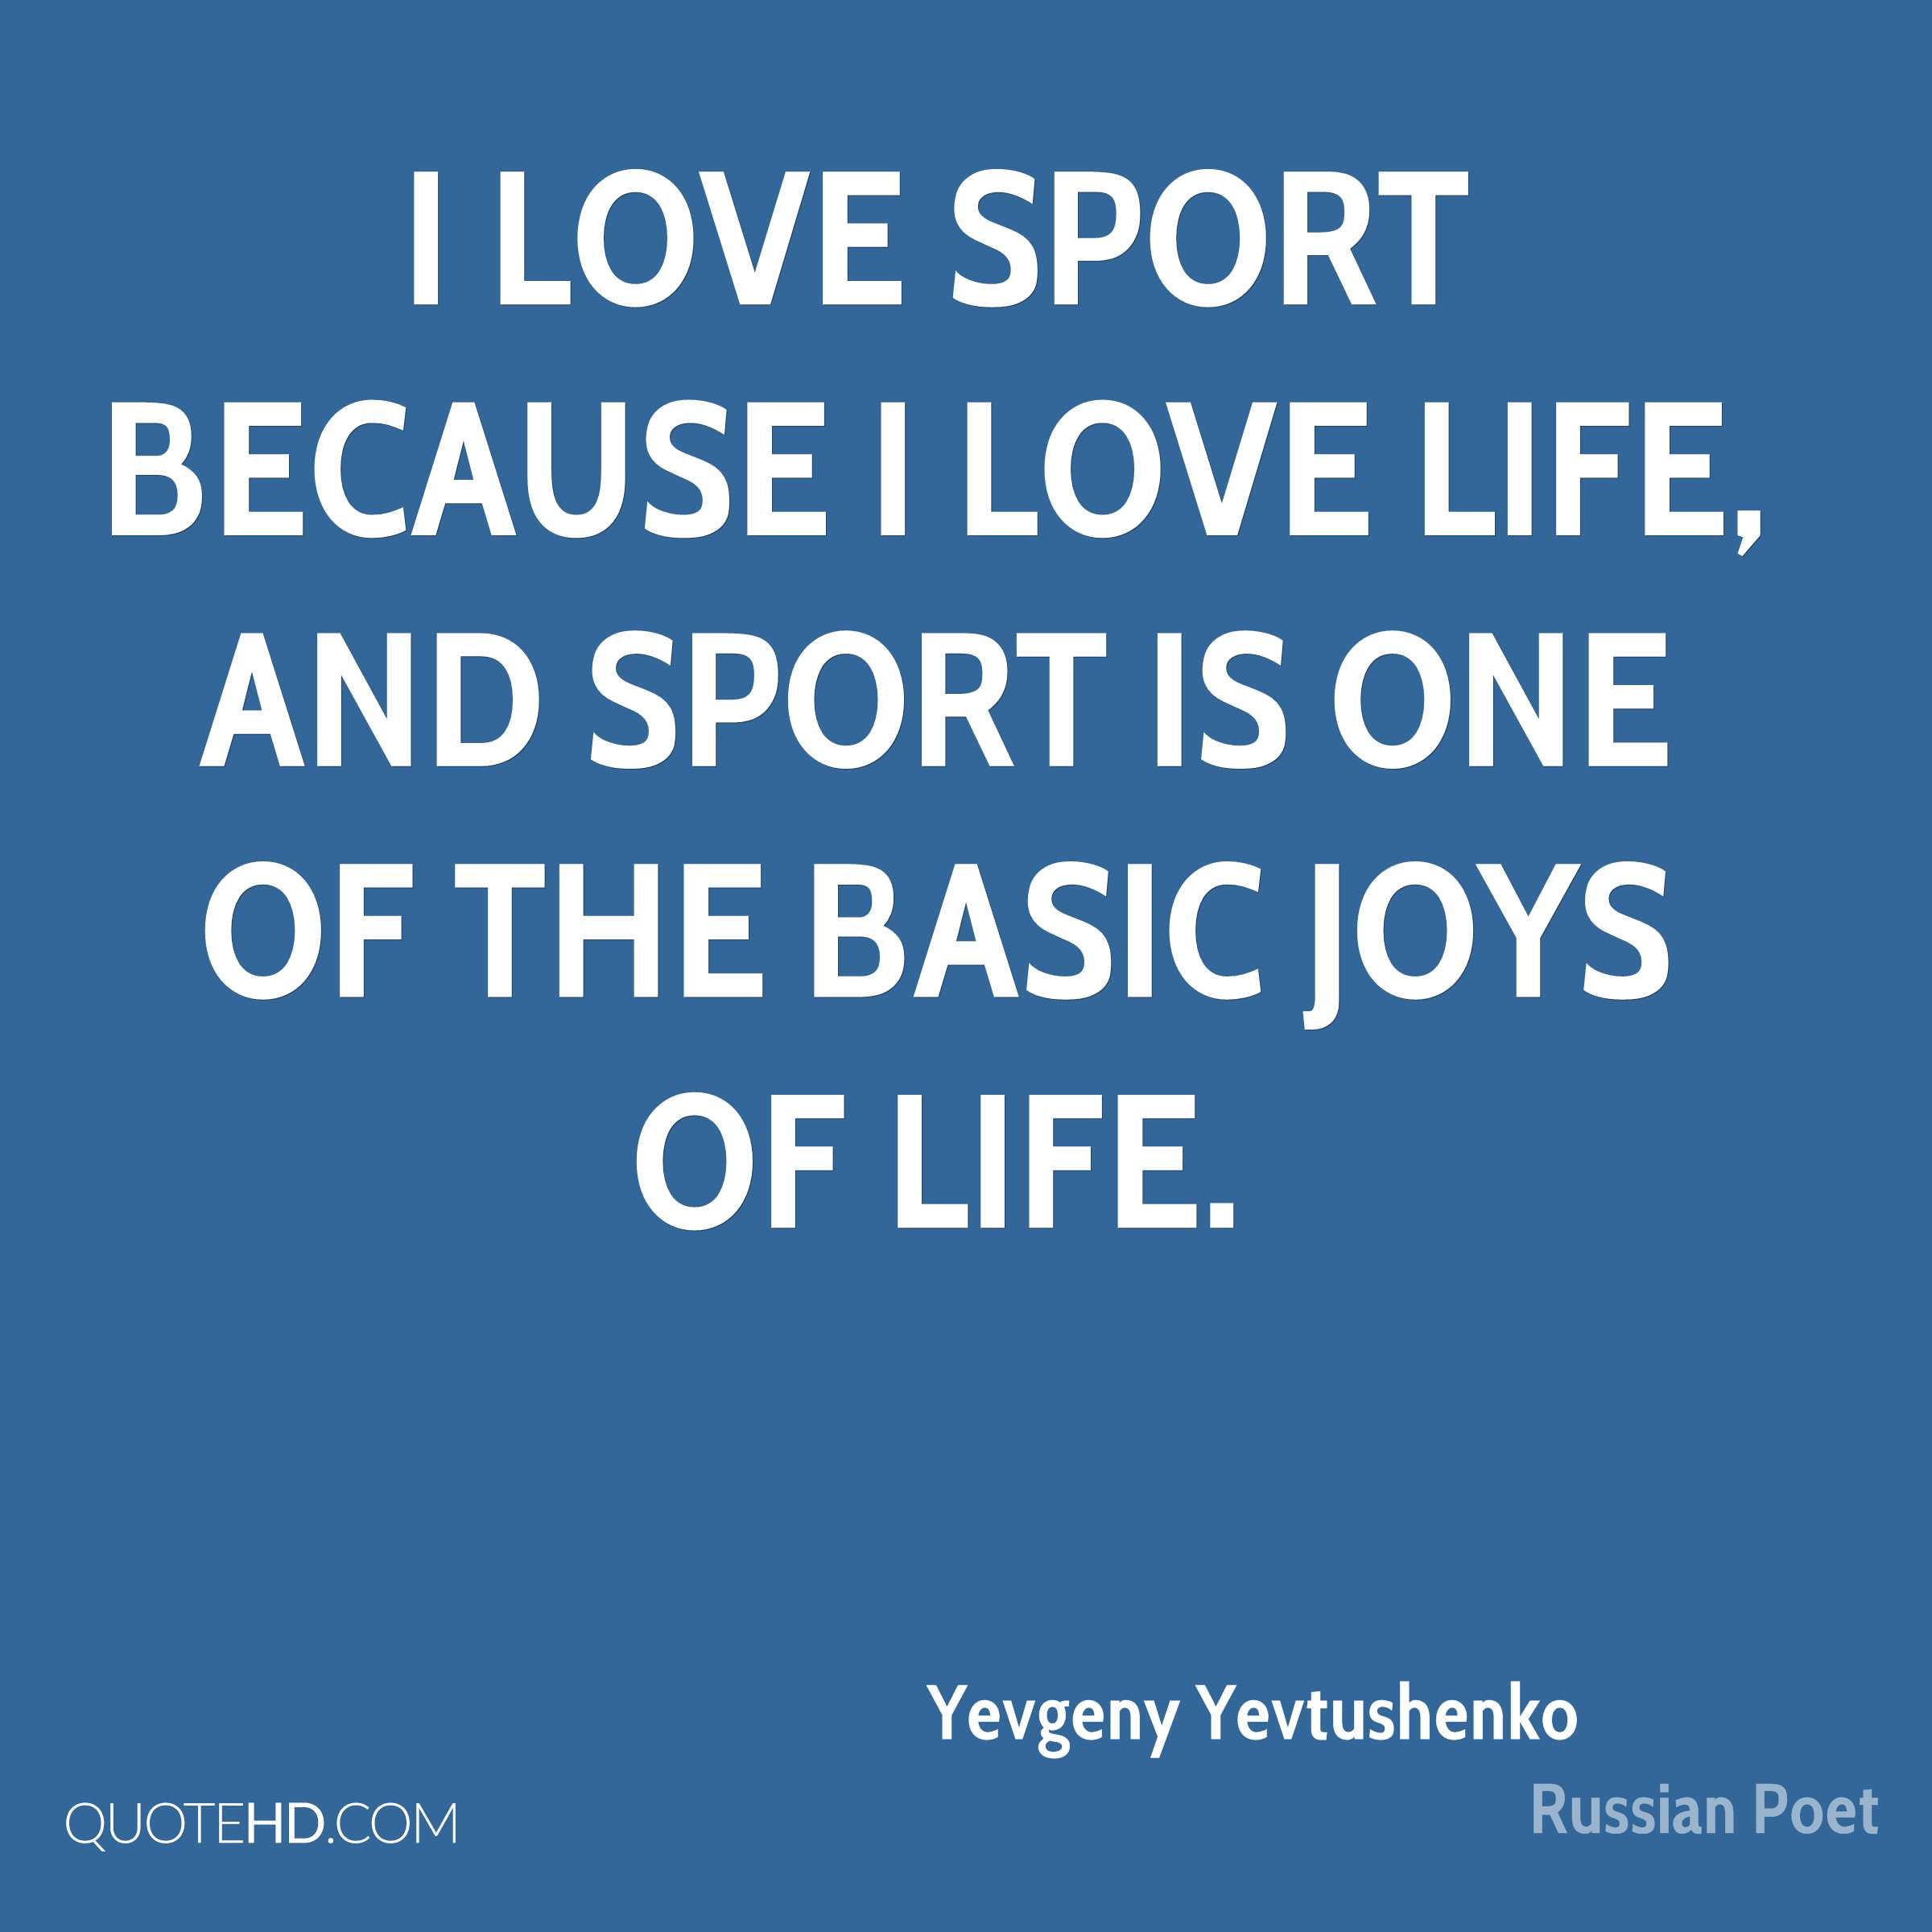 Sports Life Quotes Classy Yevgeny Yevtushenko Quotes  Quotehd